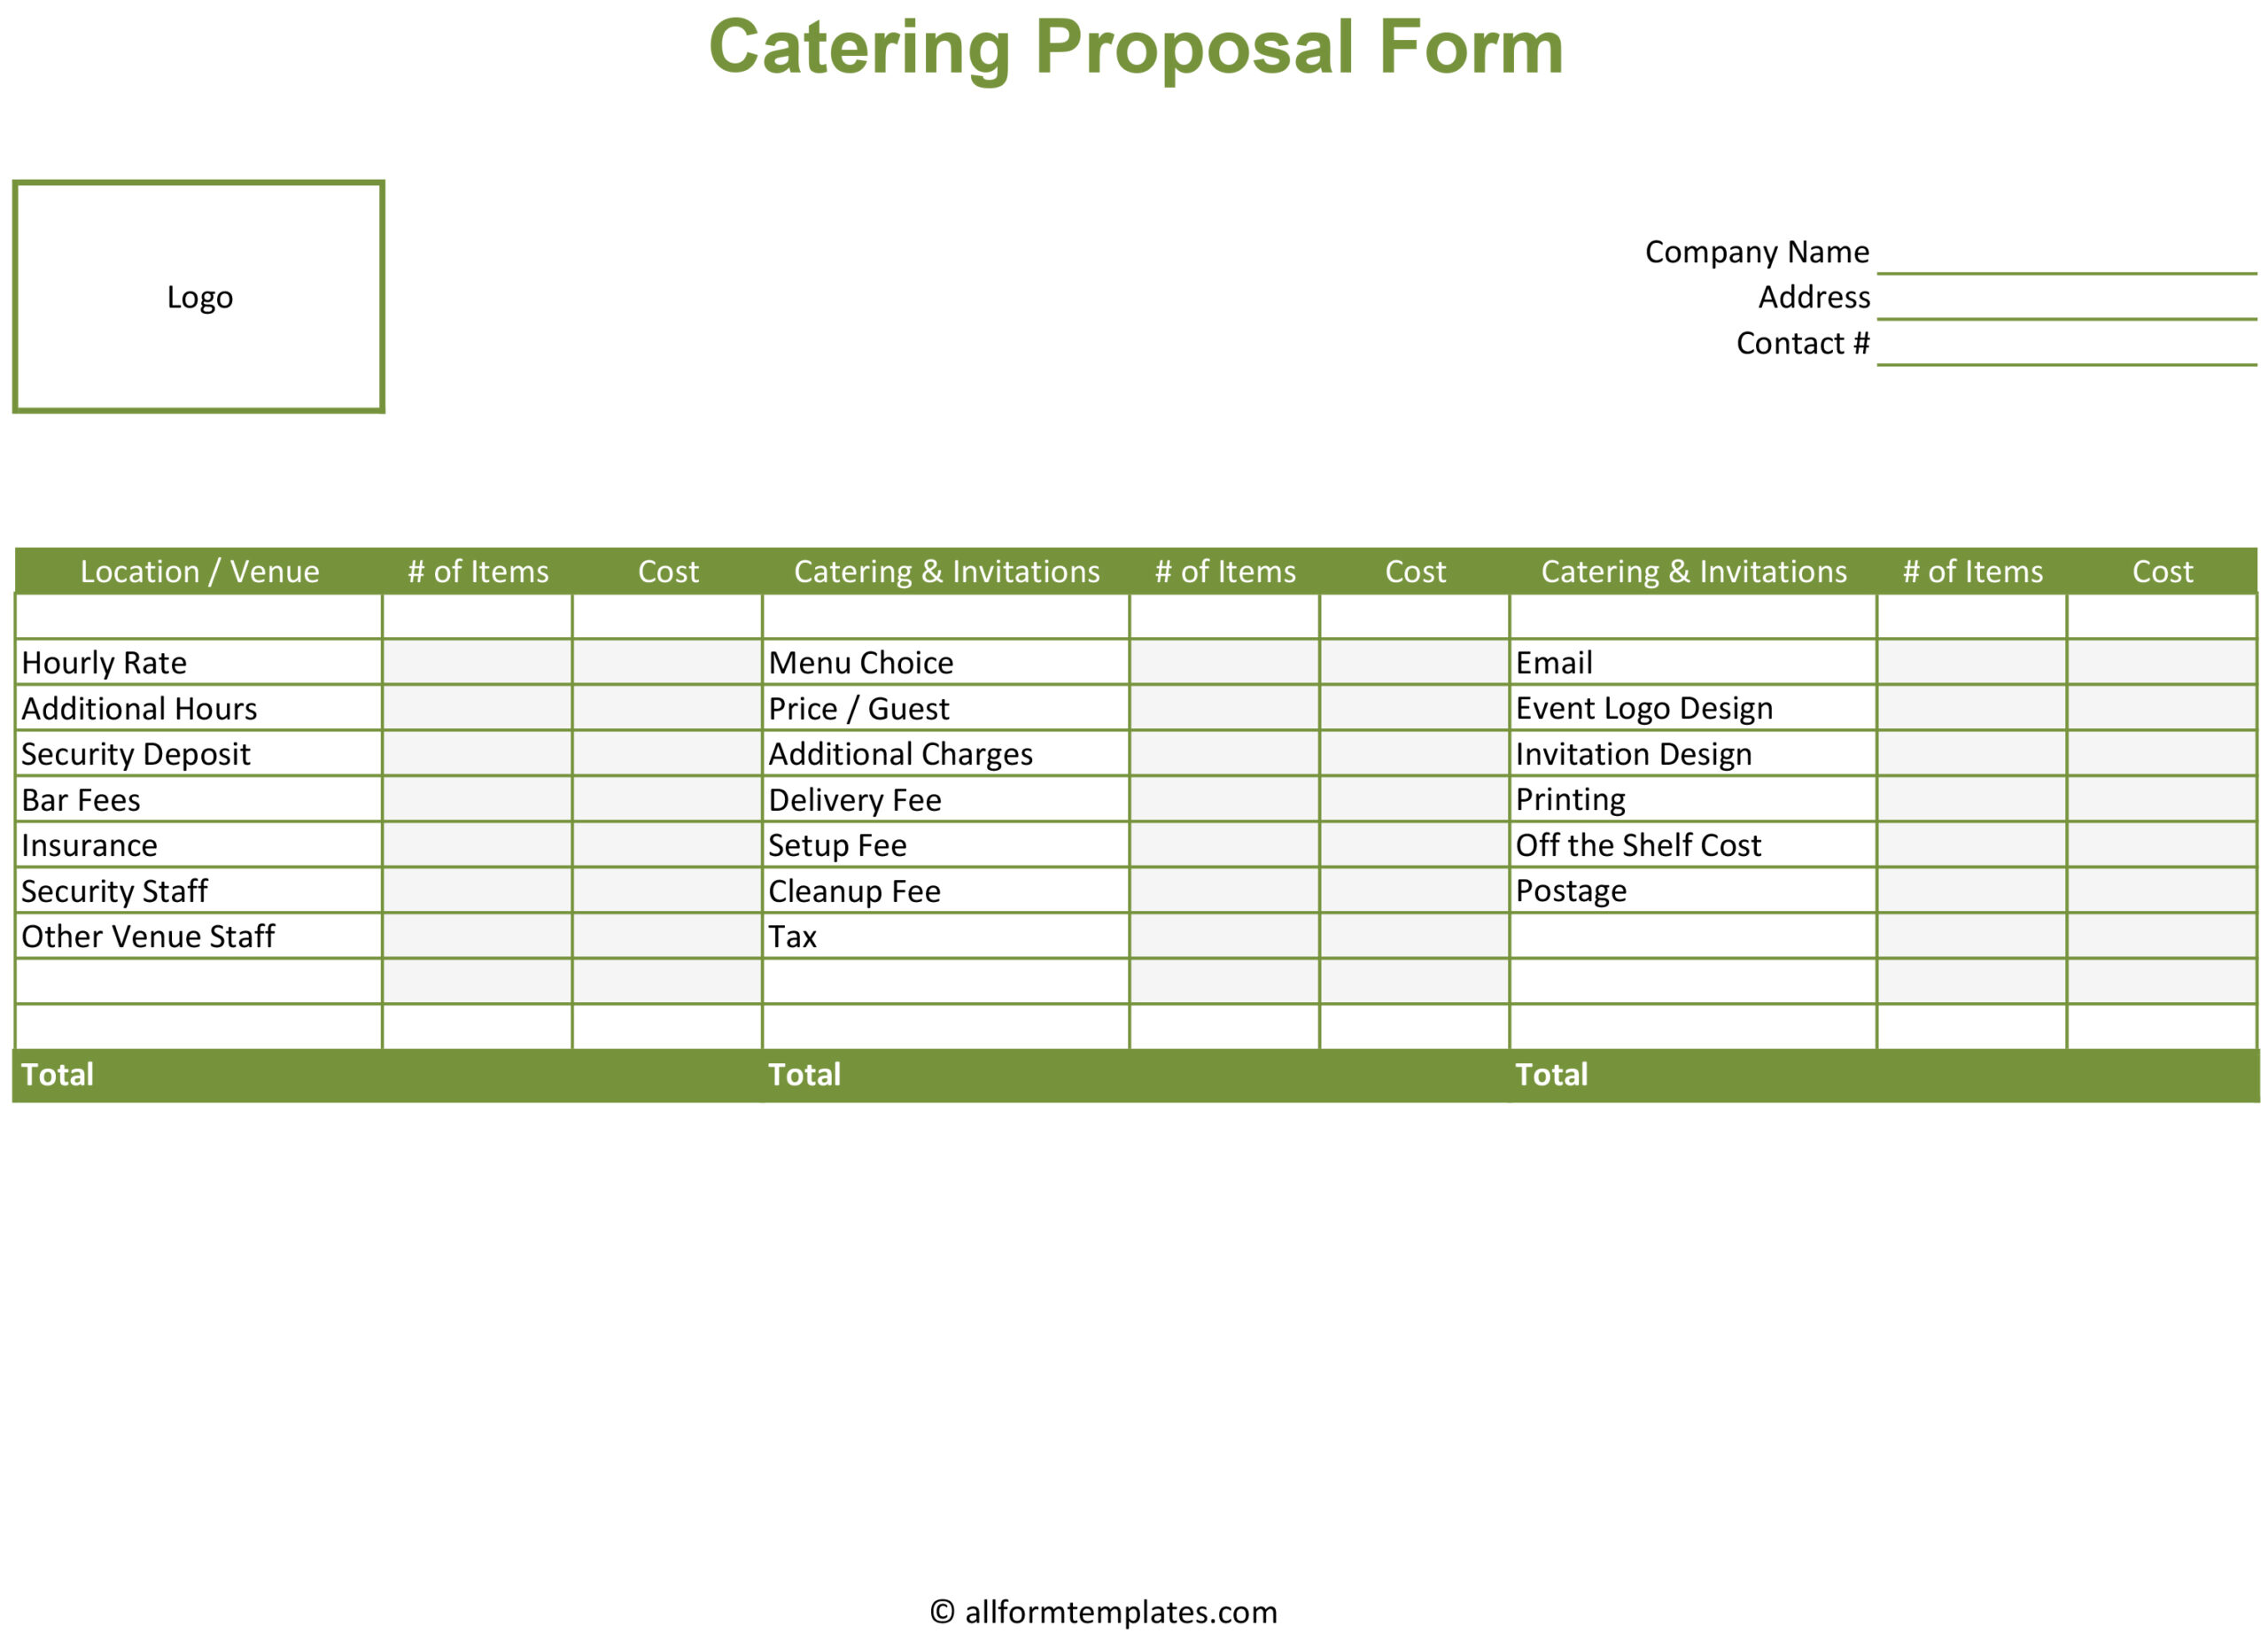 Catering-Proposal-HD